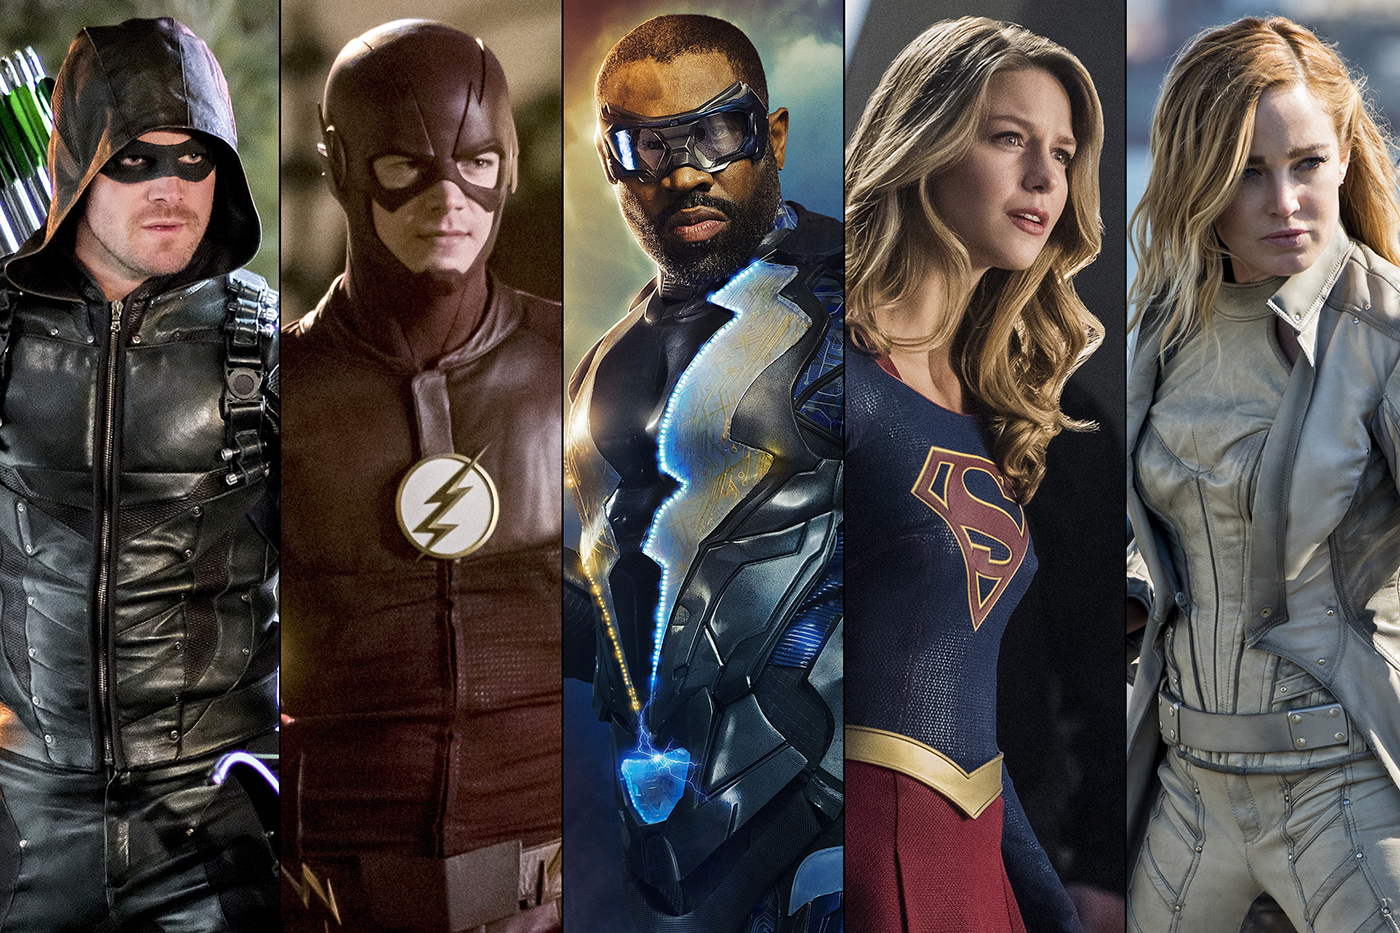 L'Arrowverse de la CW : Green Arrow, The Flash, Supergirl, Legends of Tomorrow et Black Lightning